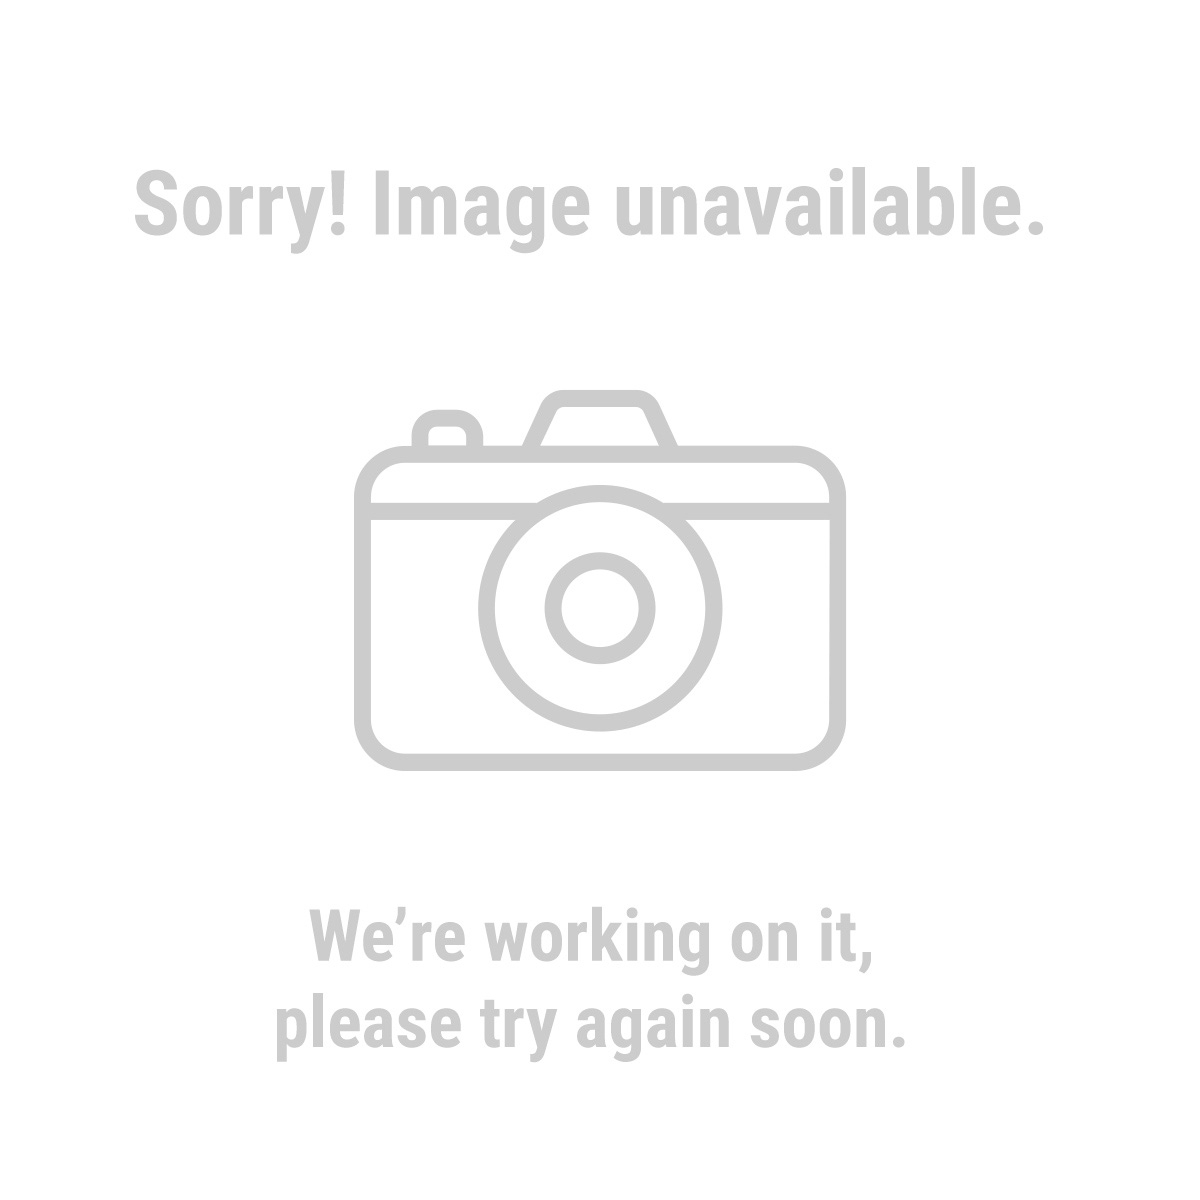 "Pittsburgh 895 0 to 1"" Range Digital Micrometer"